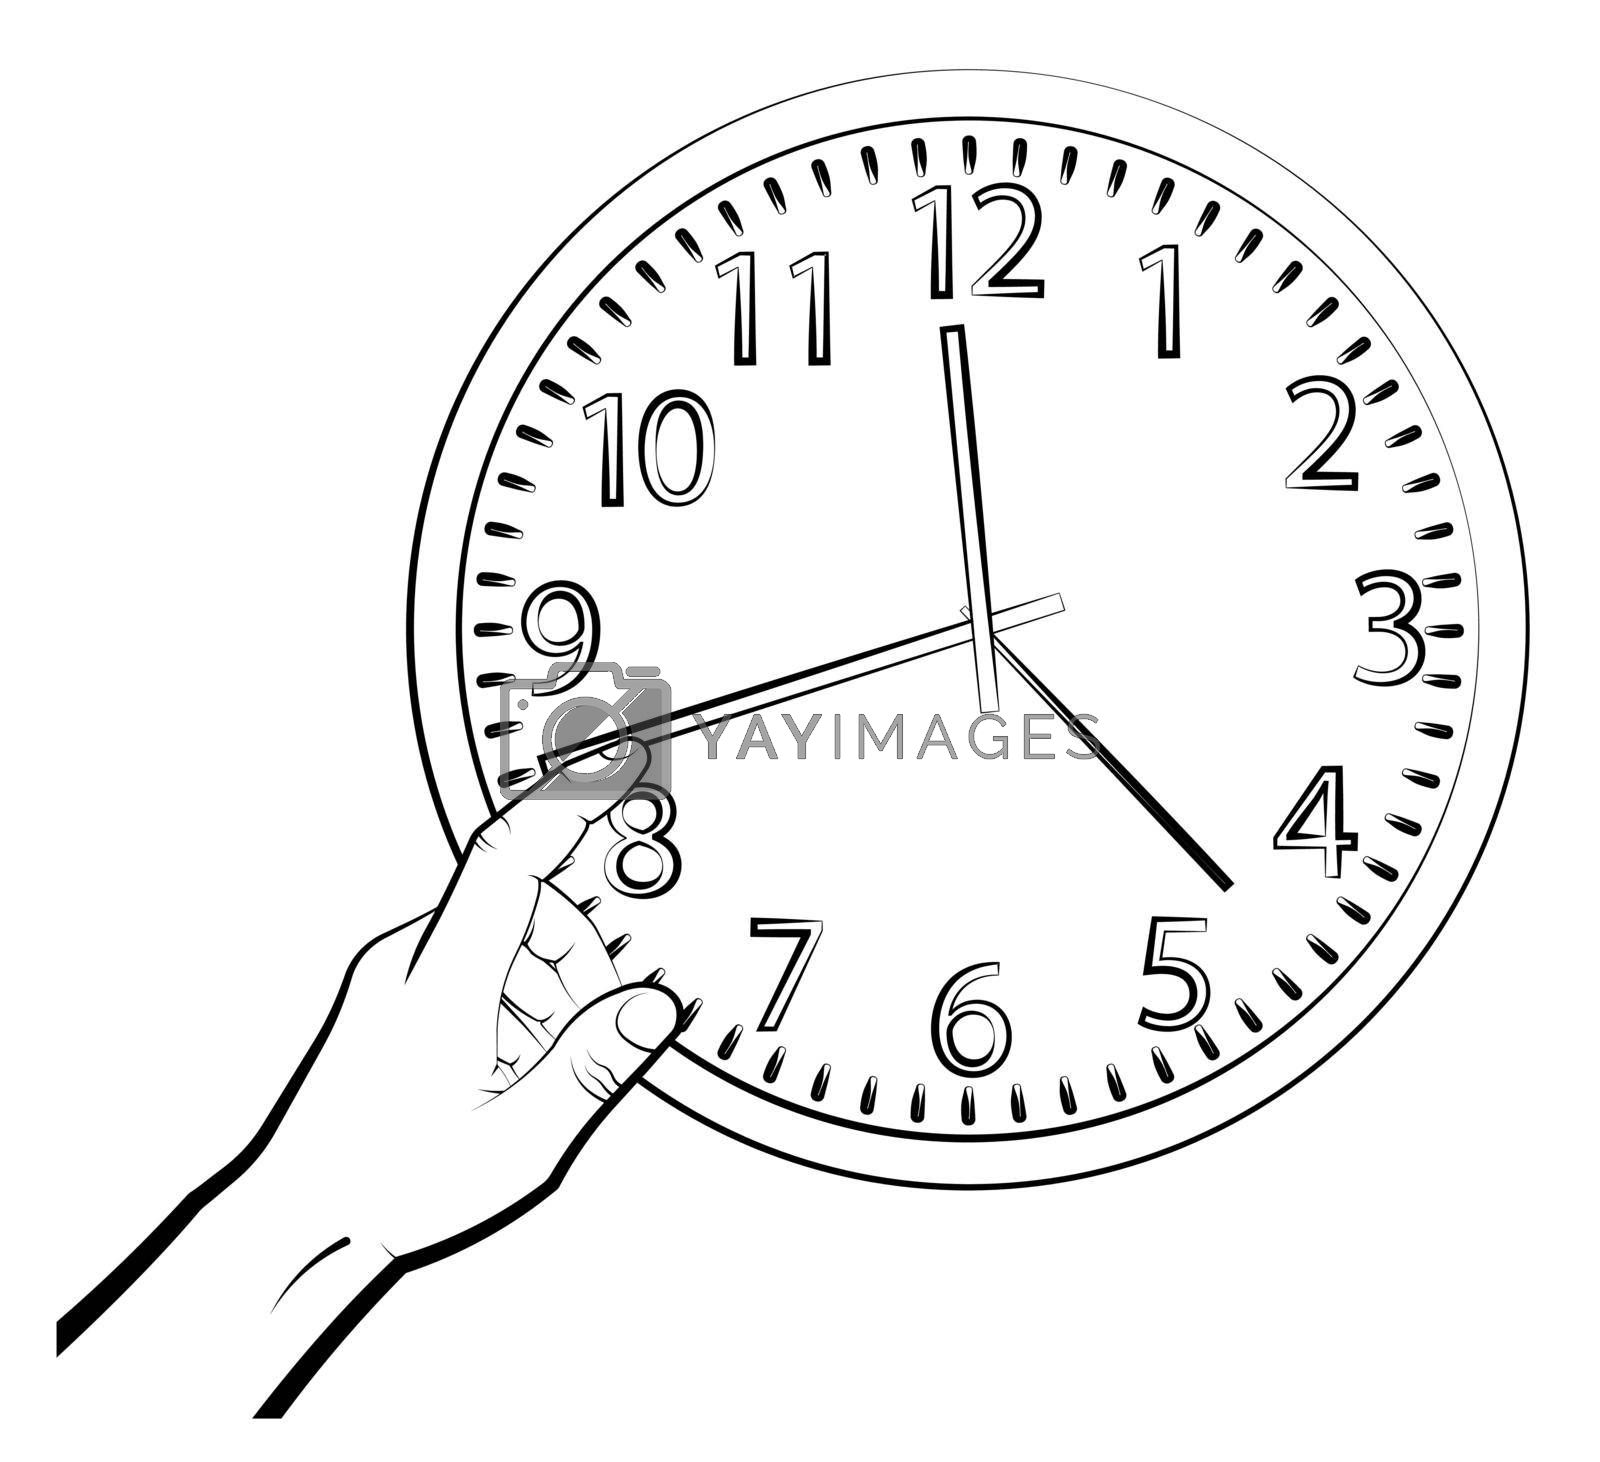 man hand translates hands of mechanical watch. Time to wake up concept. Mechanical watch for measuring time. Vector